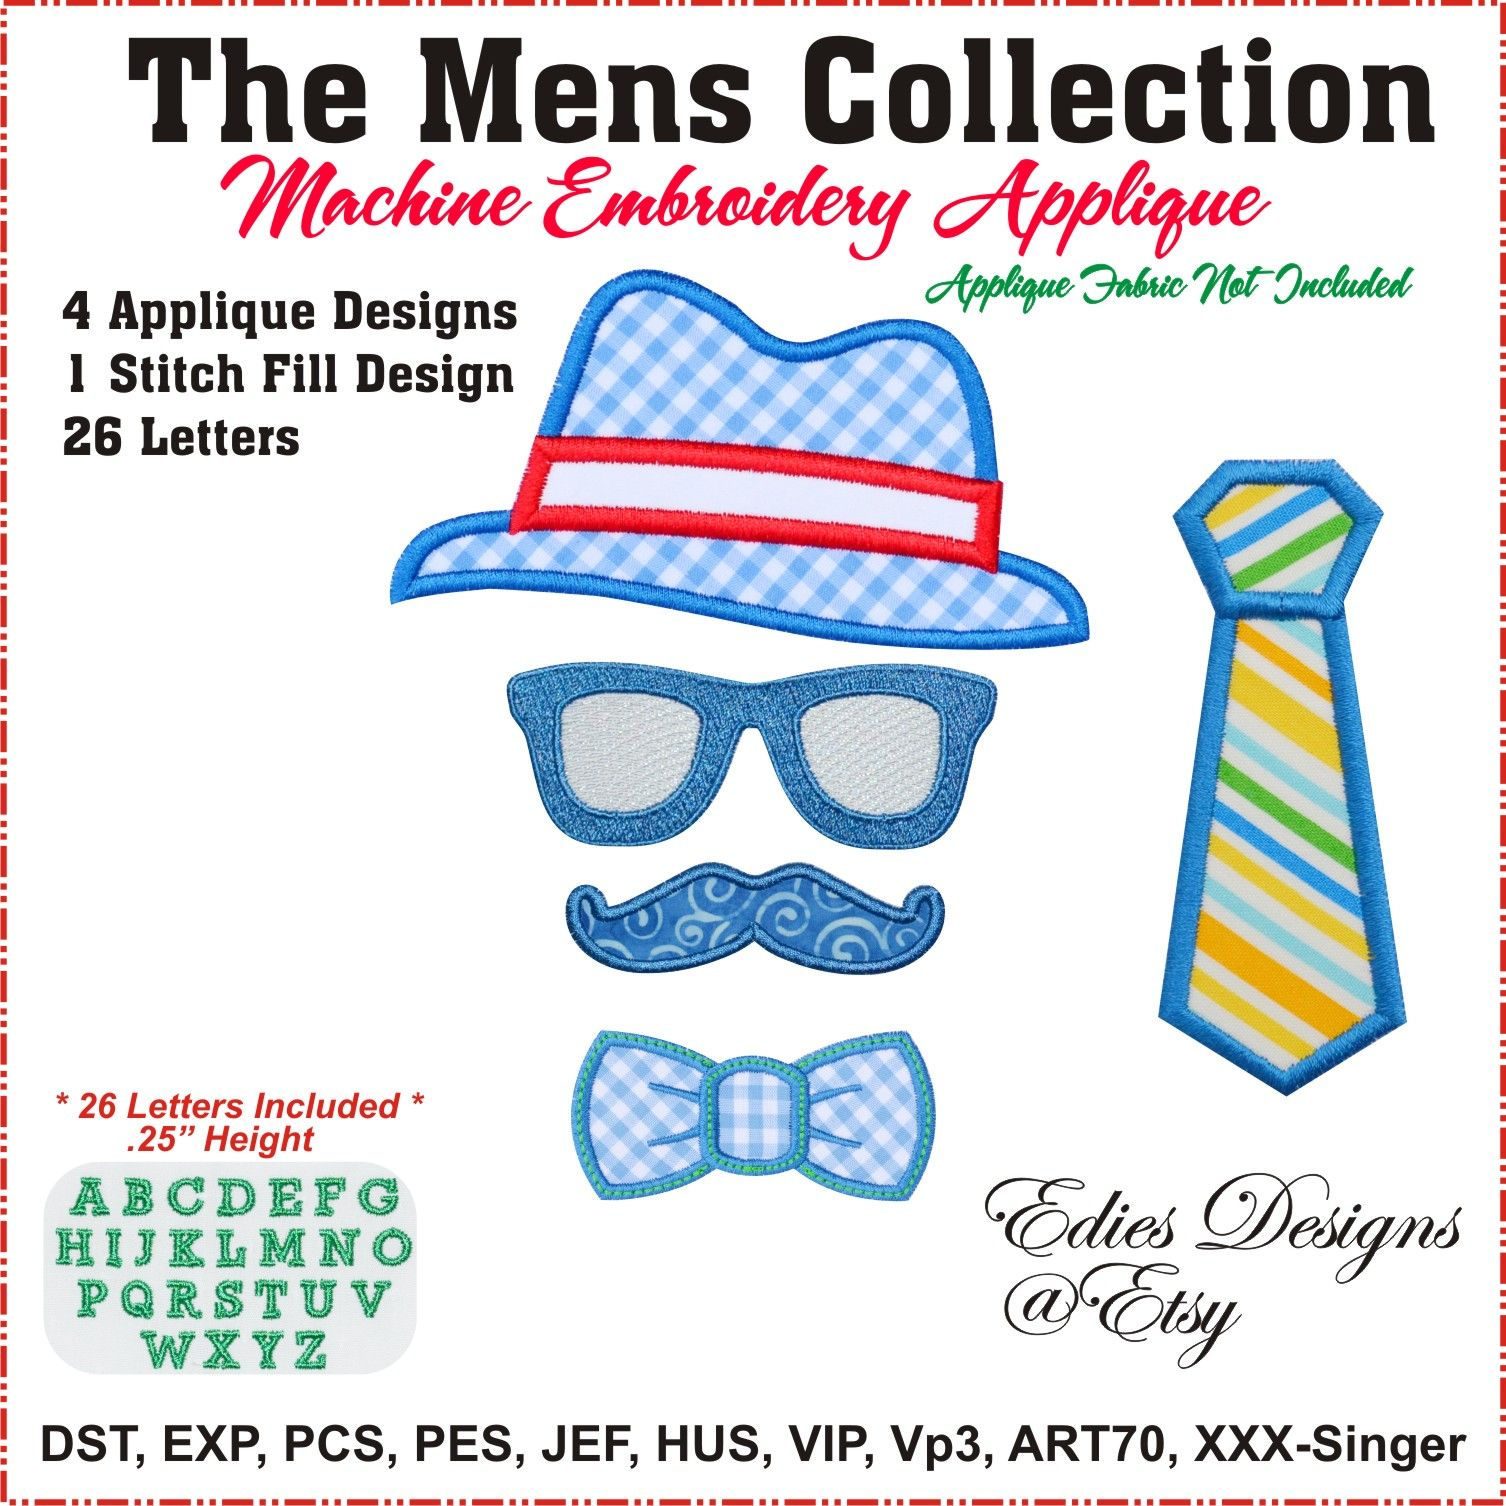 The Mens Collection with 26 letters to create his special monogram